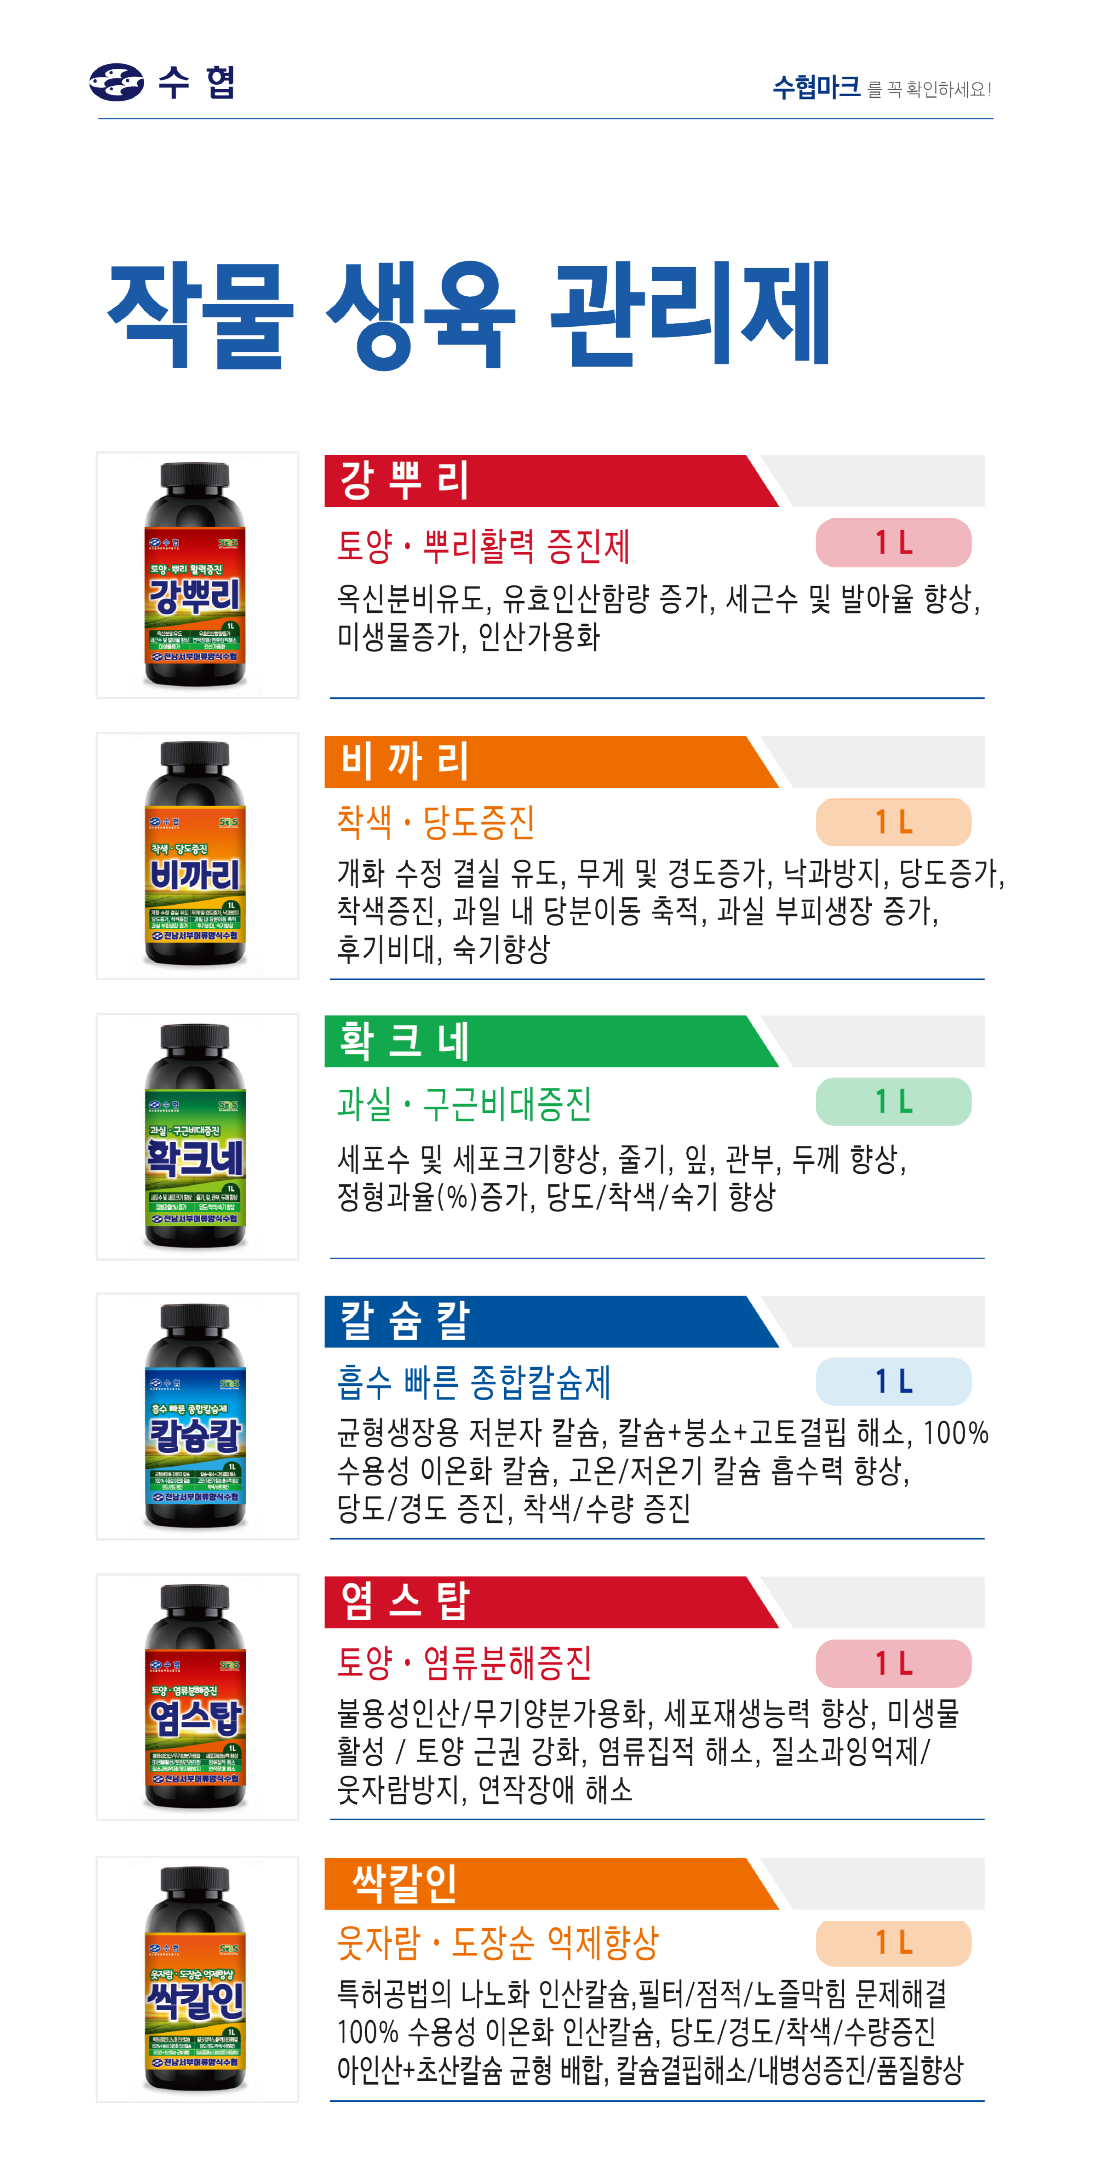 http://suhyup2019.handpr.kr/bs/se2/imgup/1589964416det1_s.png